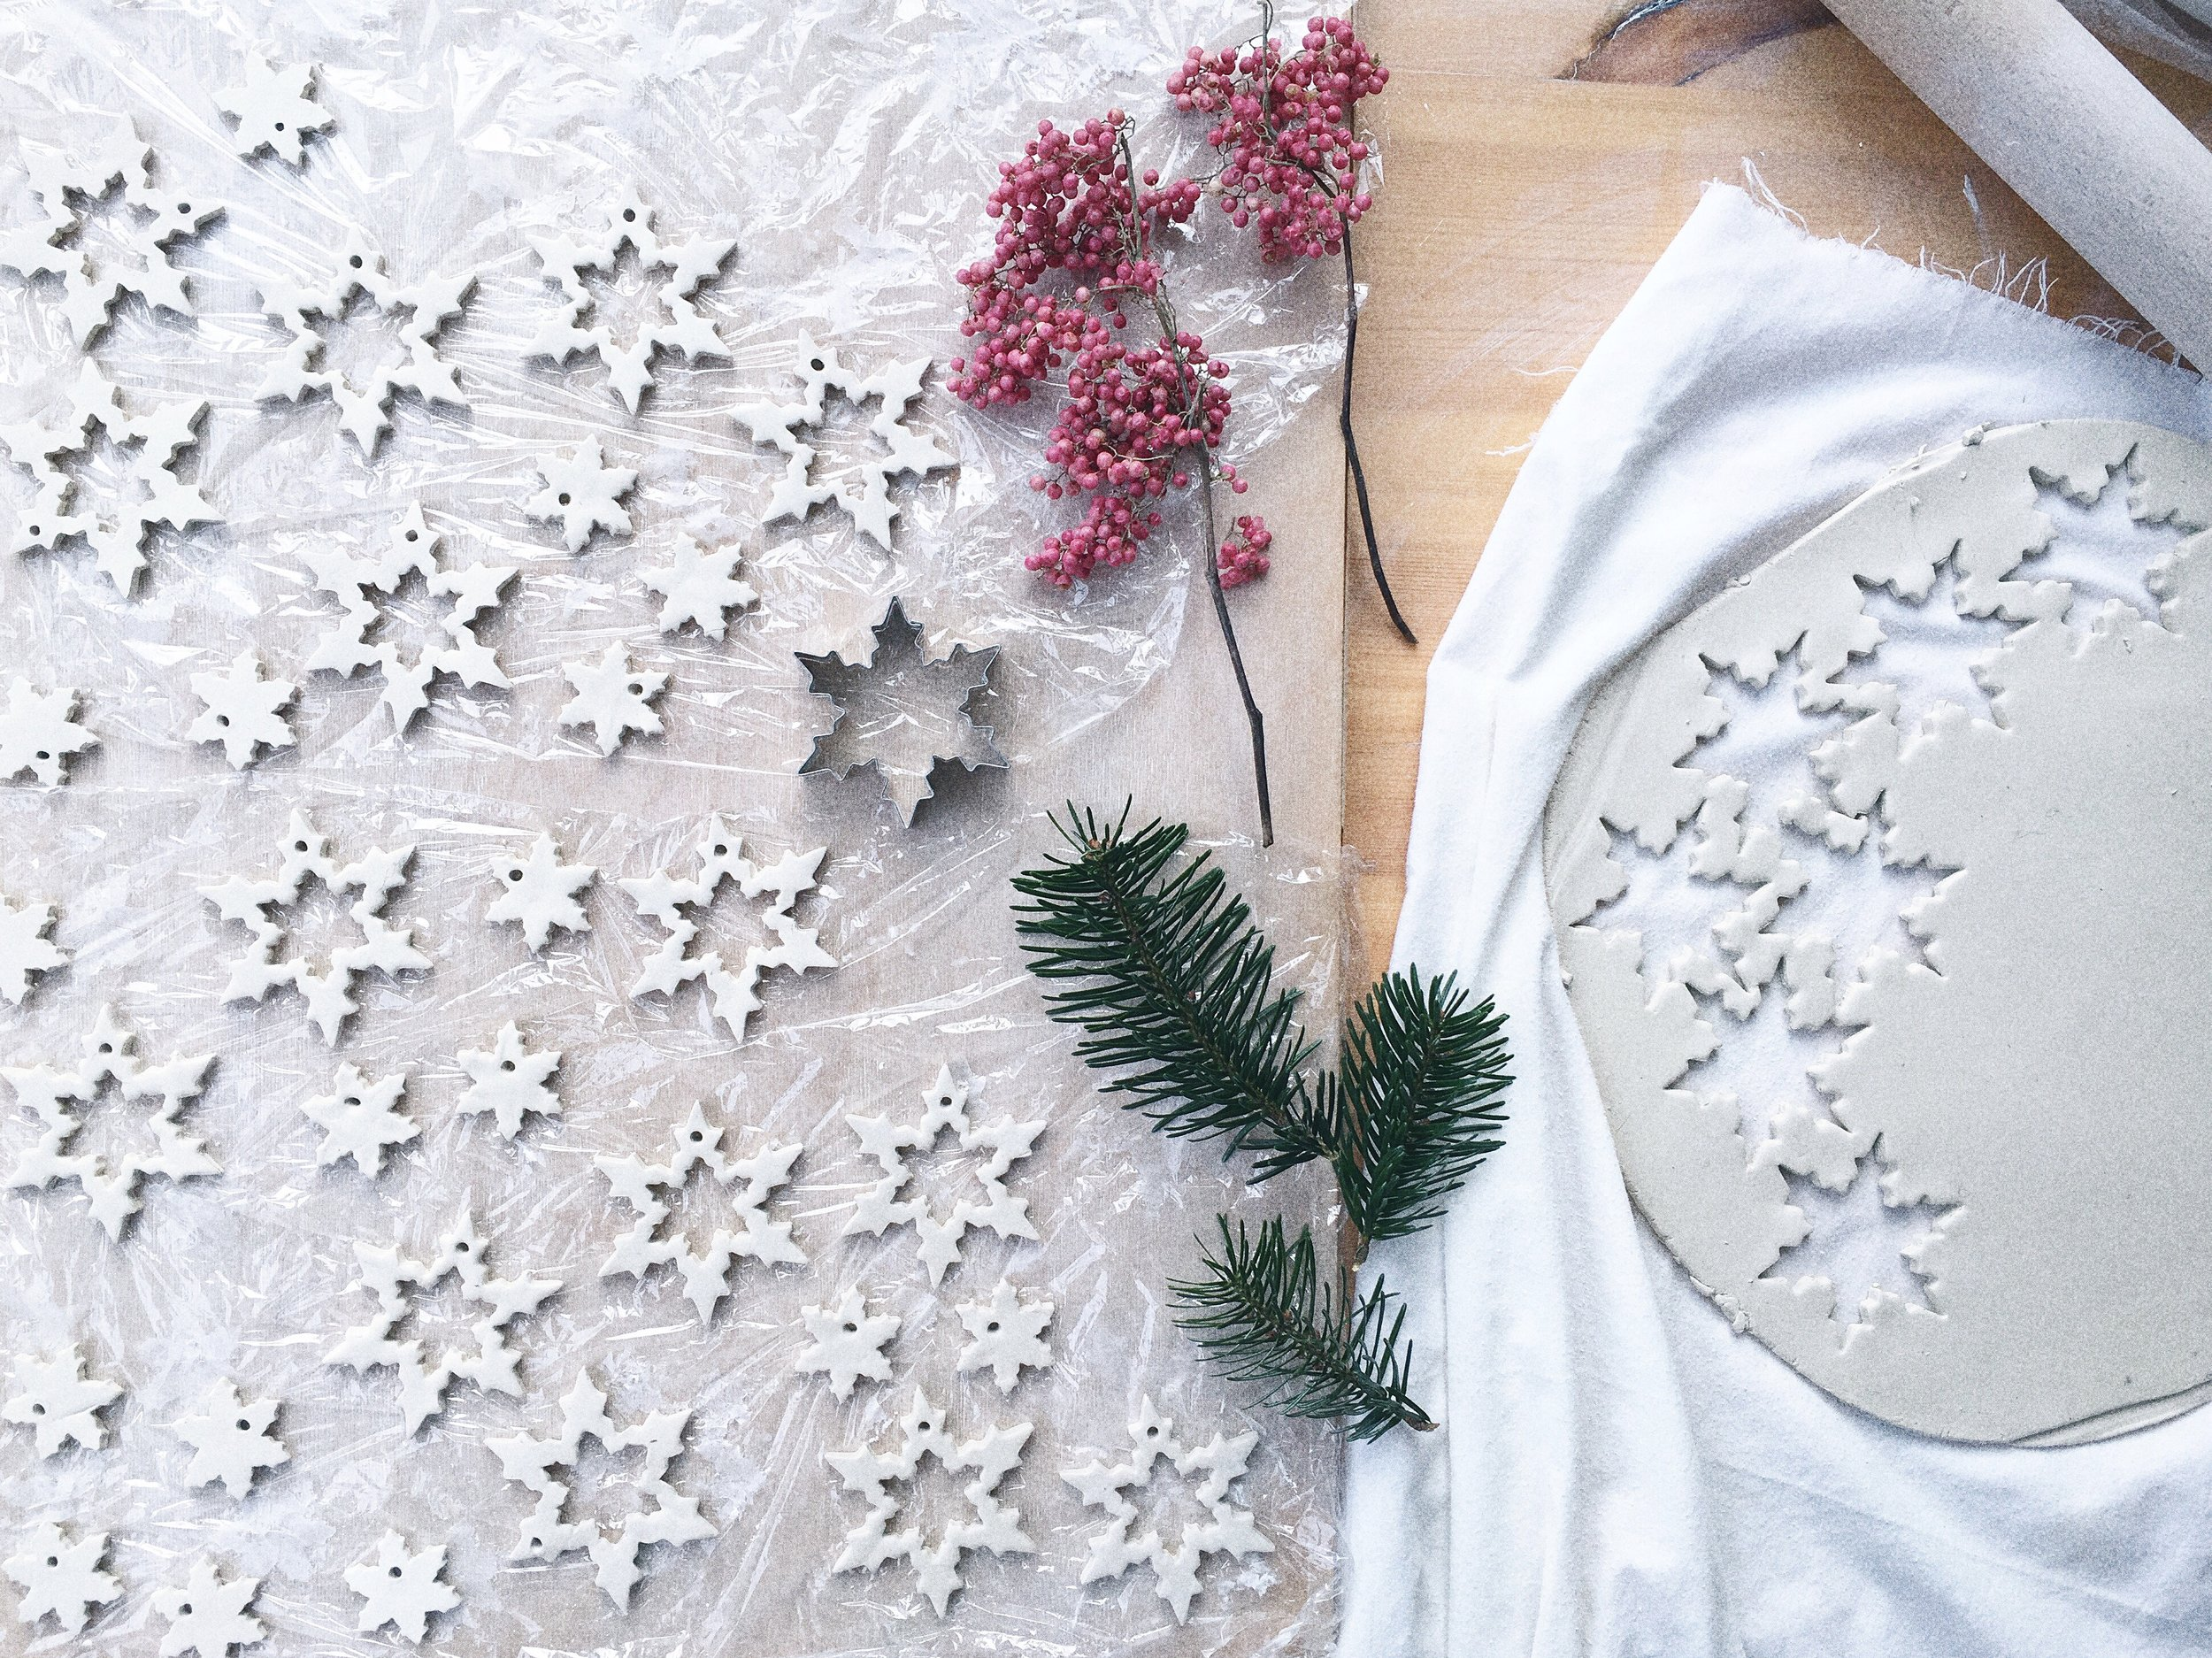 Make clay Christmas decorations workshop